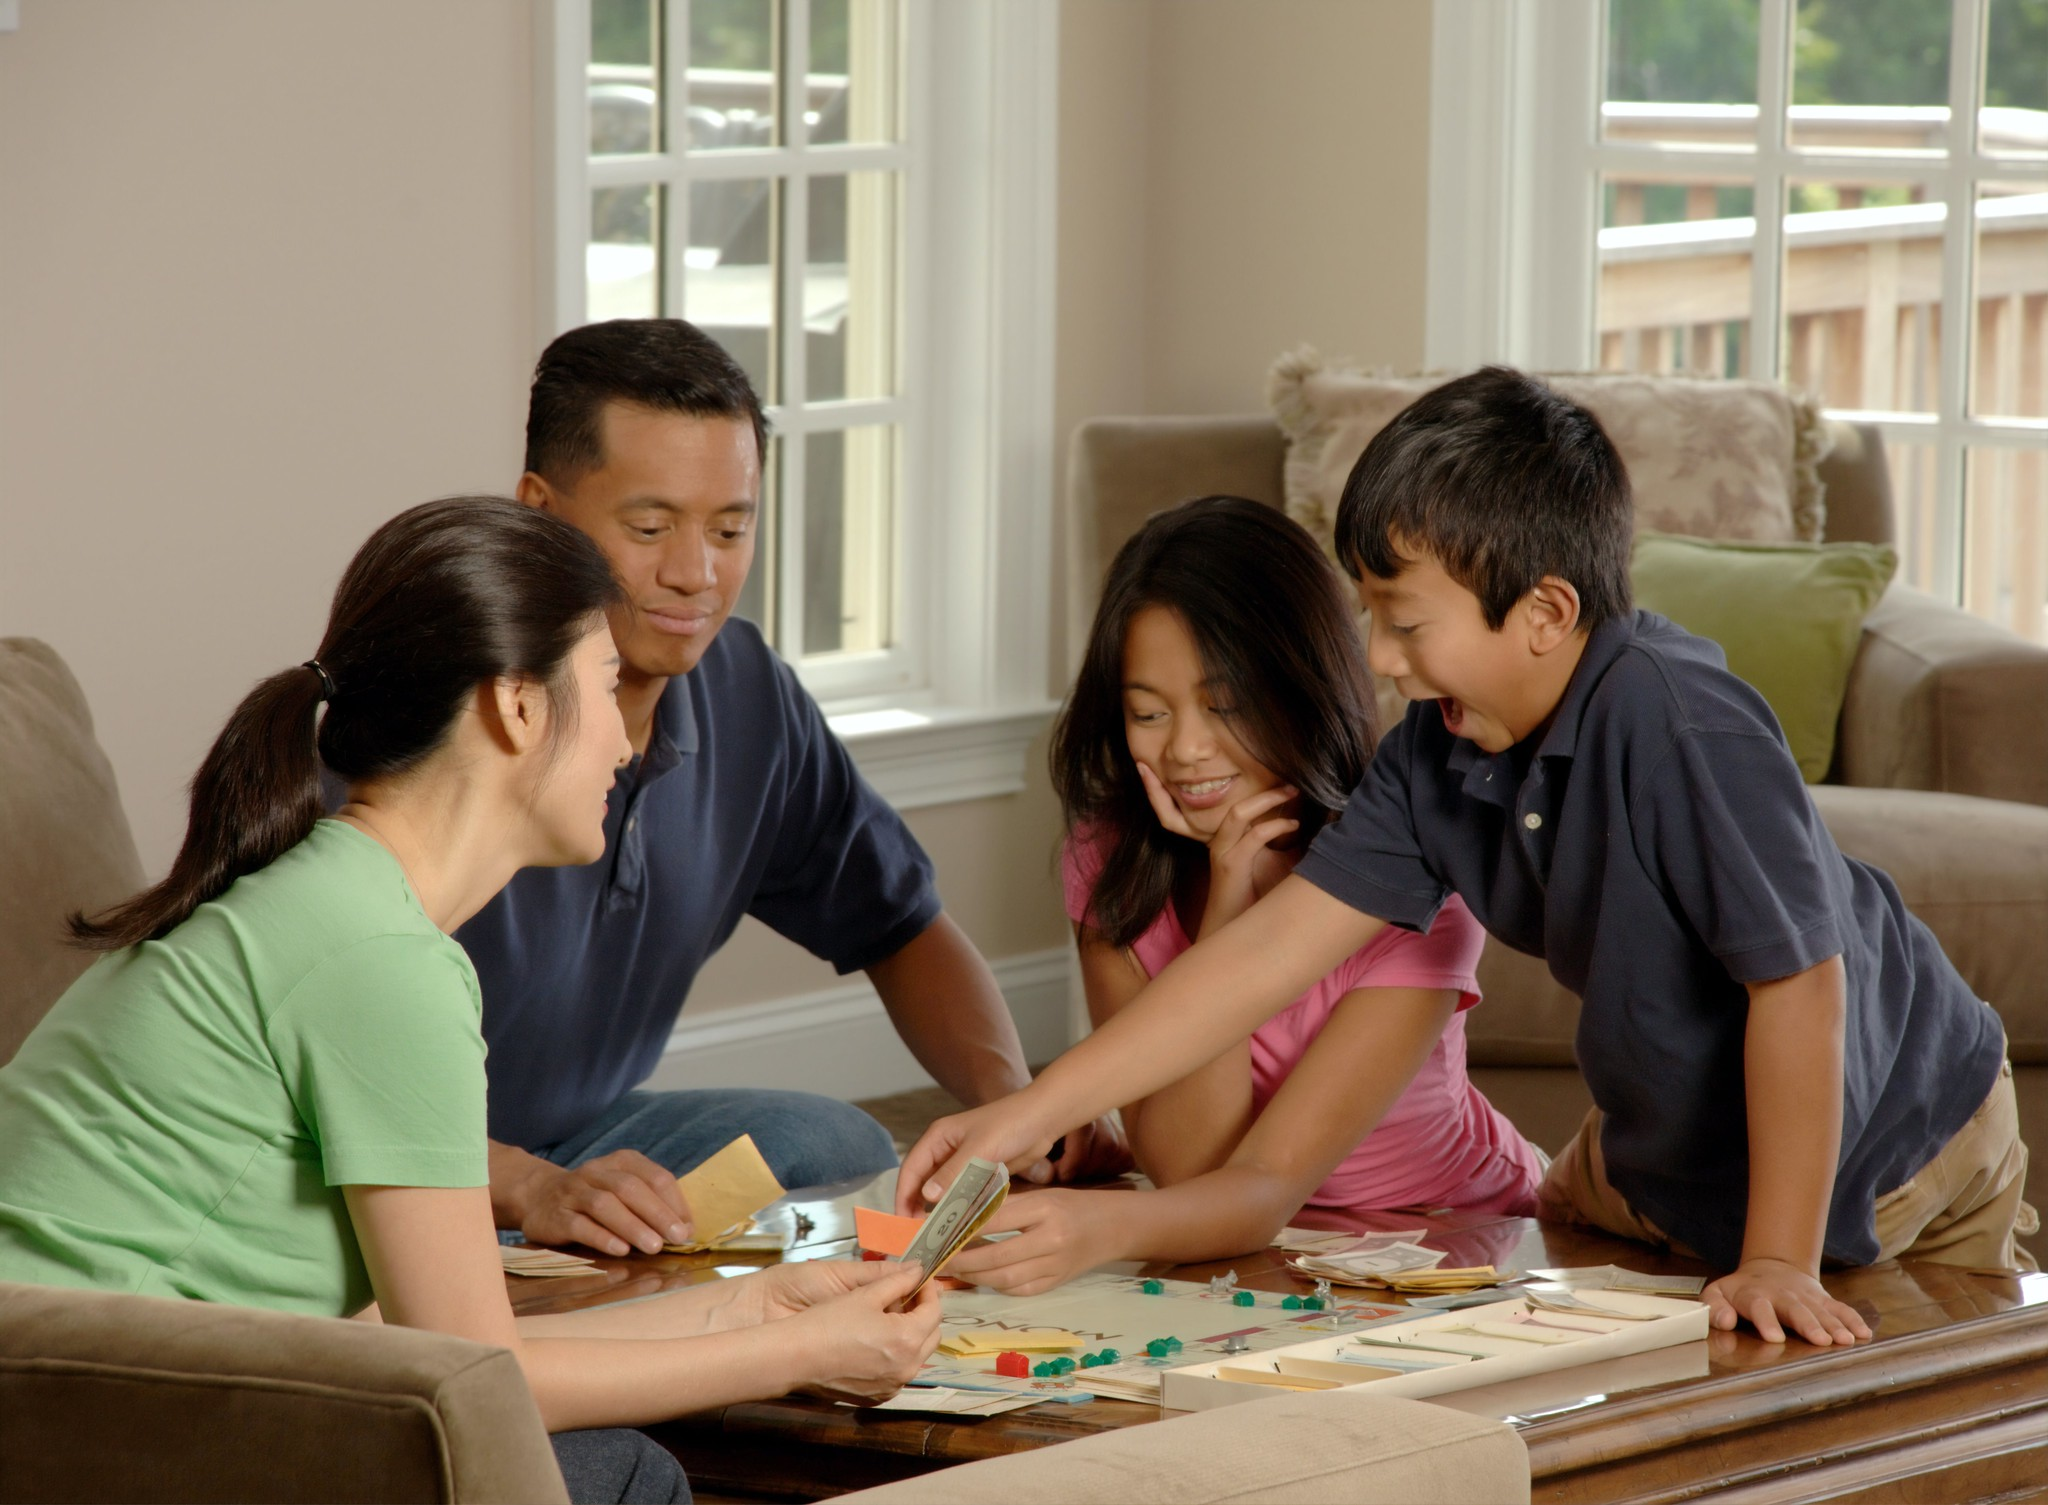 family playing board game togerher